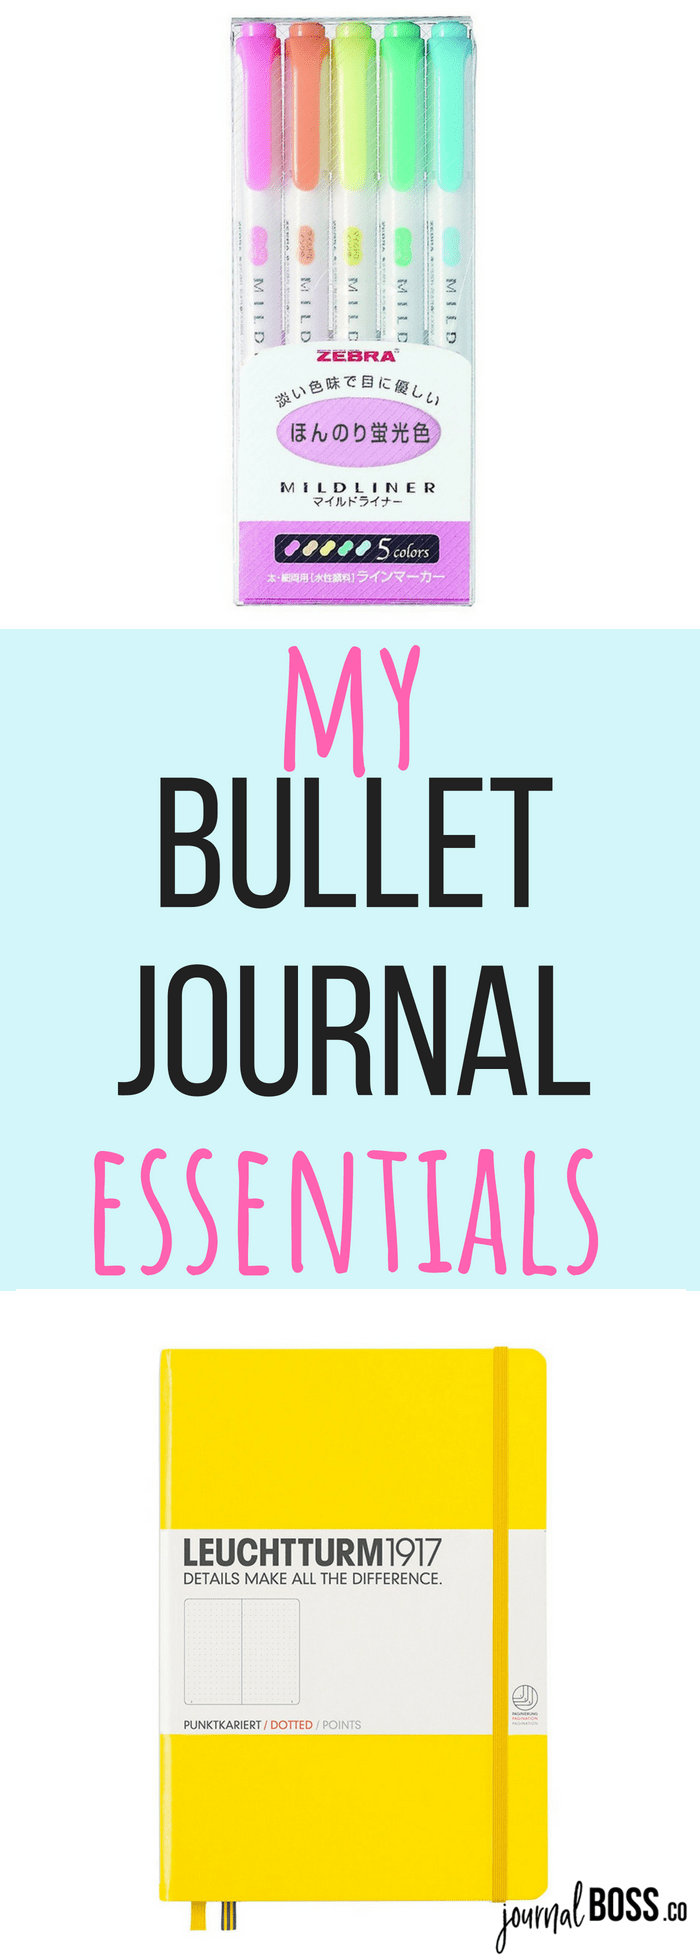 Love love LOVE bullet journal supplies! Here are the absolute best notebooks, pens, washi tape and more for bullet journaling. Which products are your favorites?